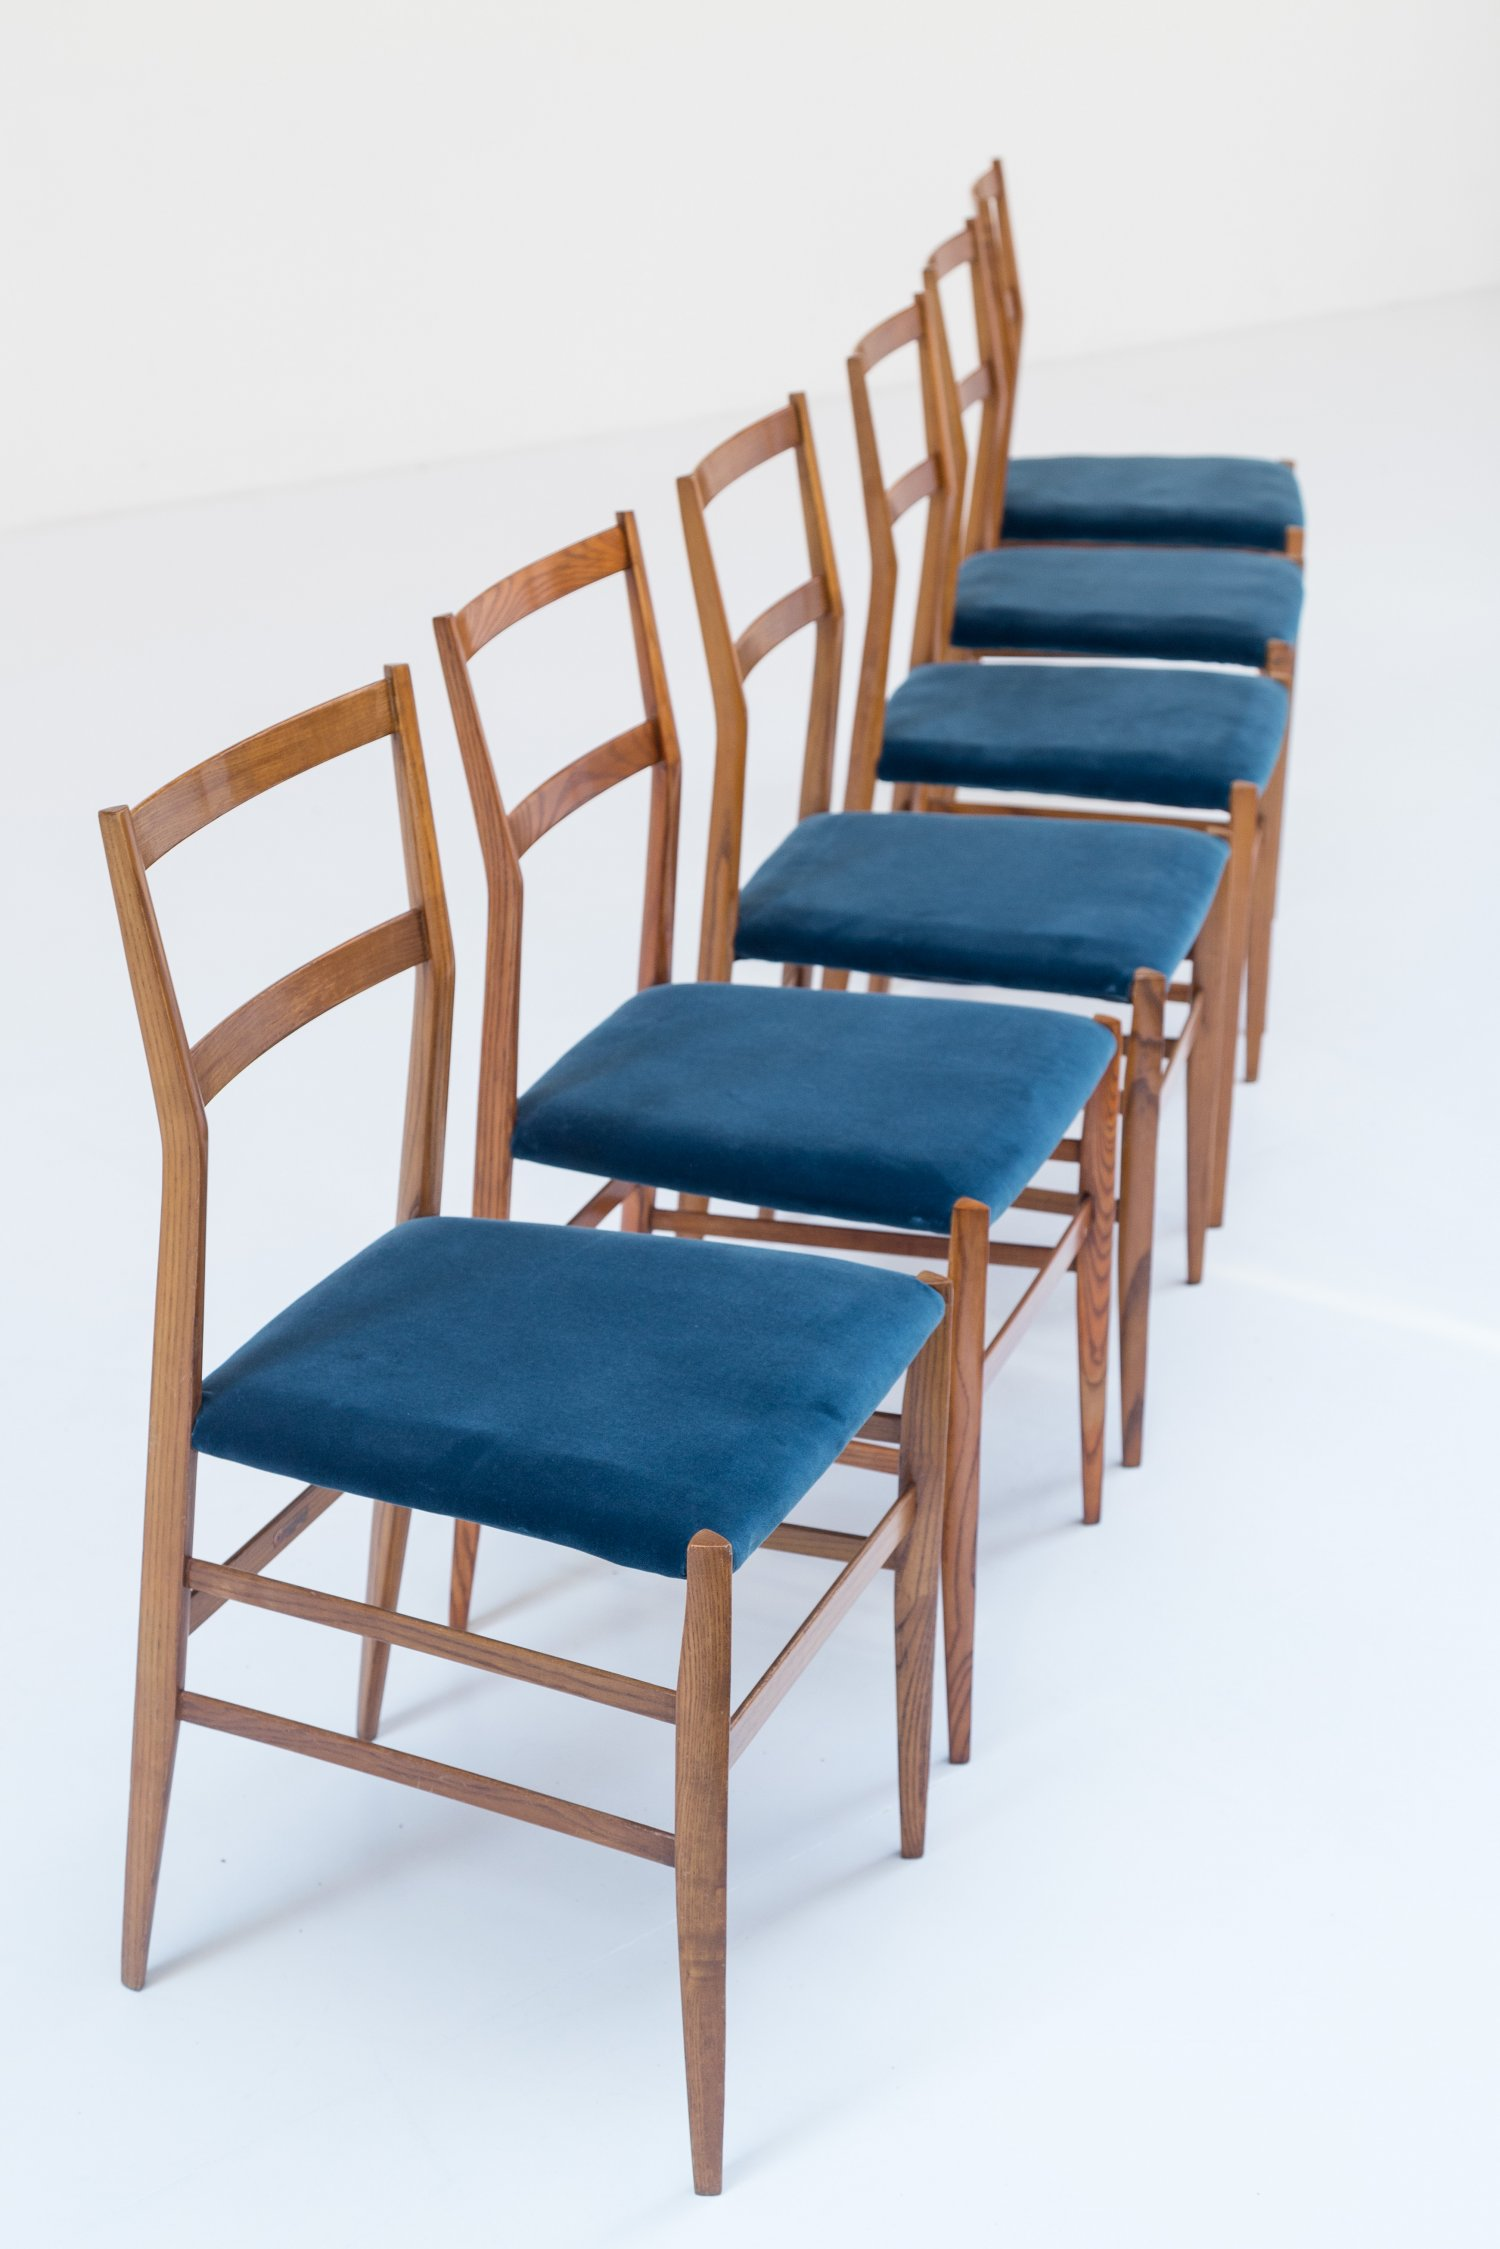 Set of 6 Superleggeras by Gio Ponti for Cassina